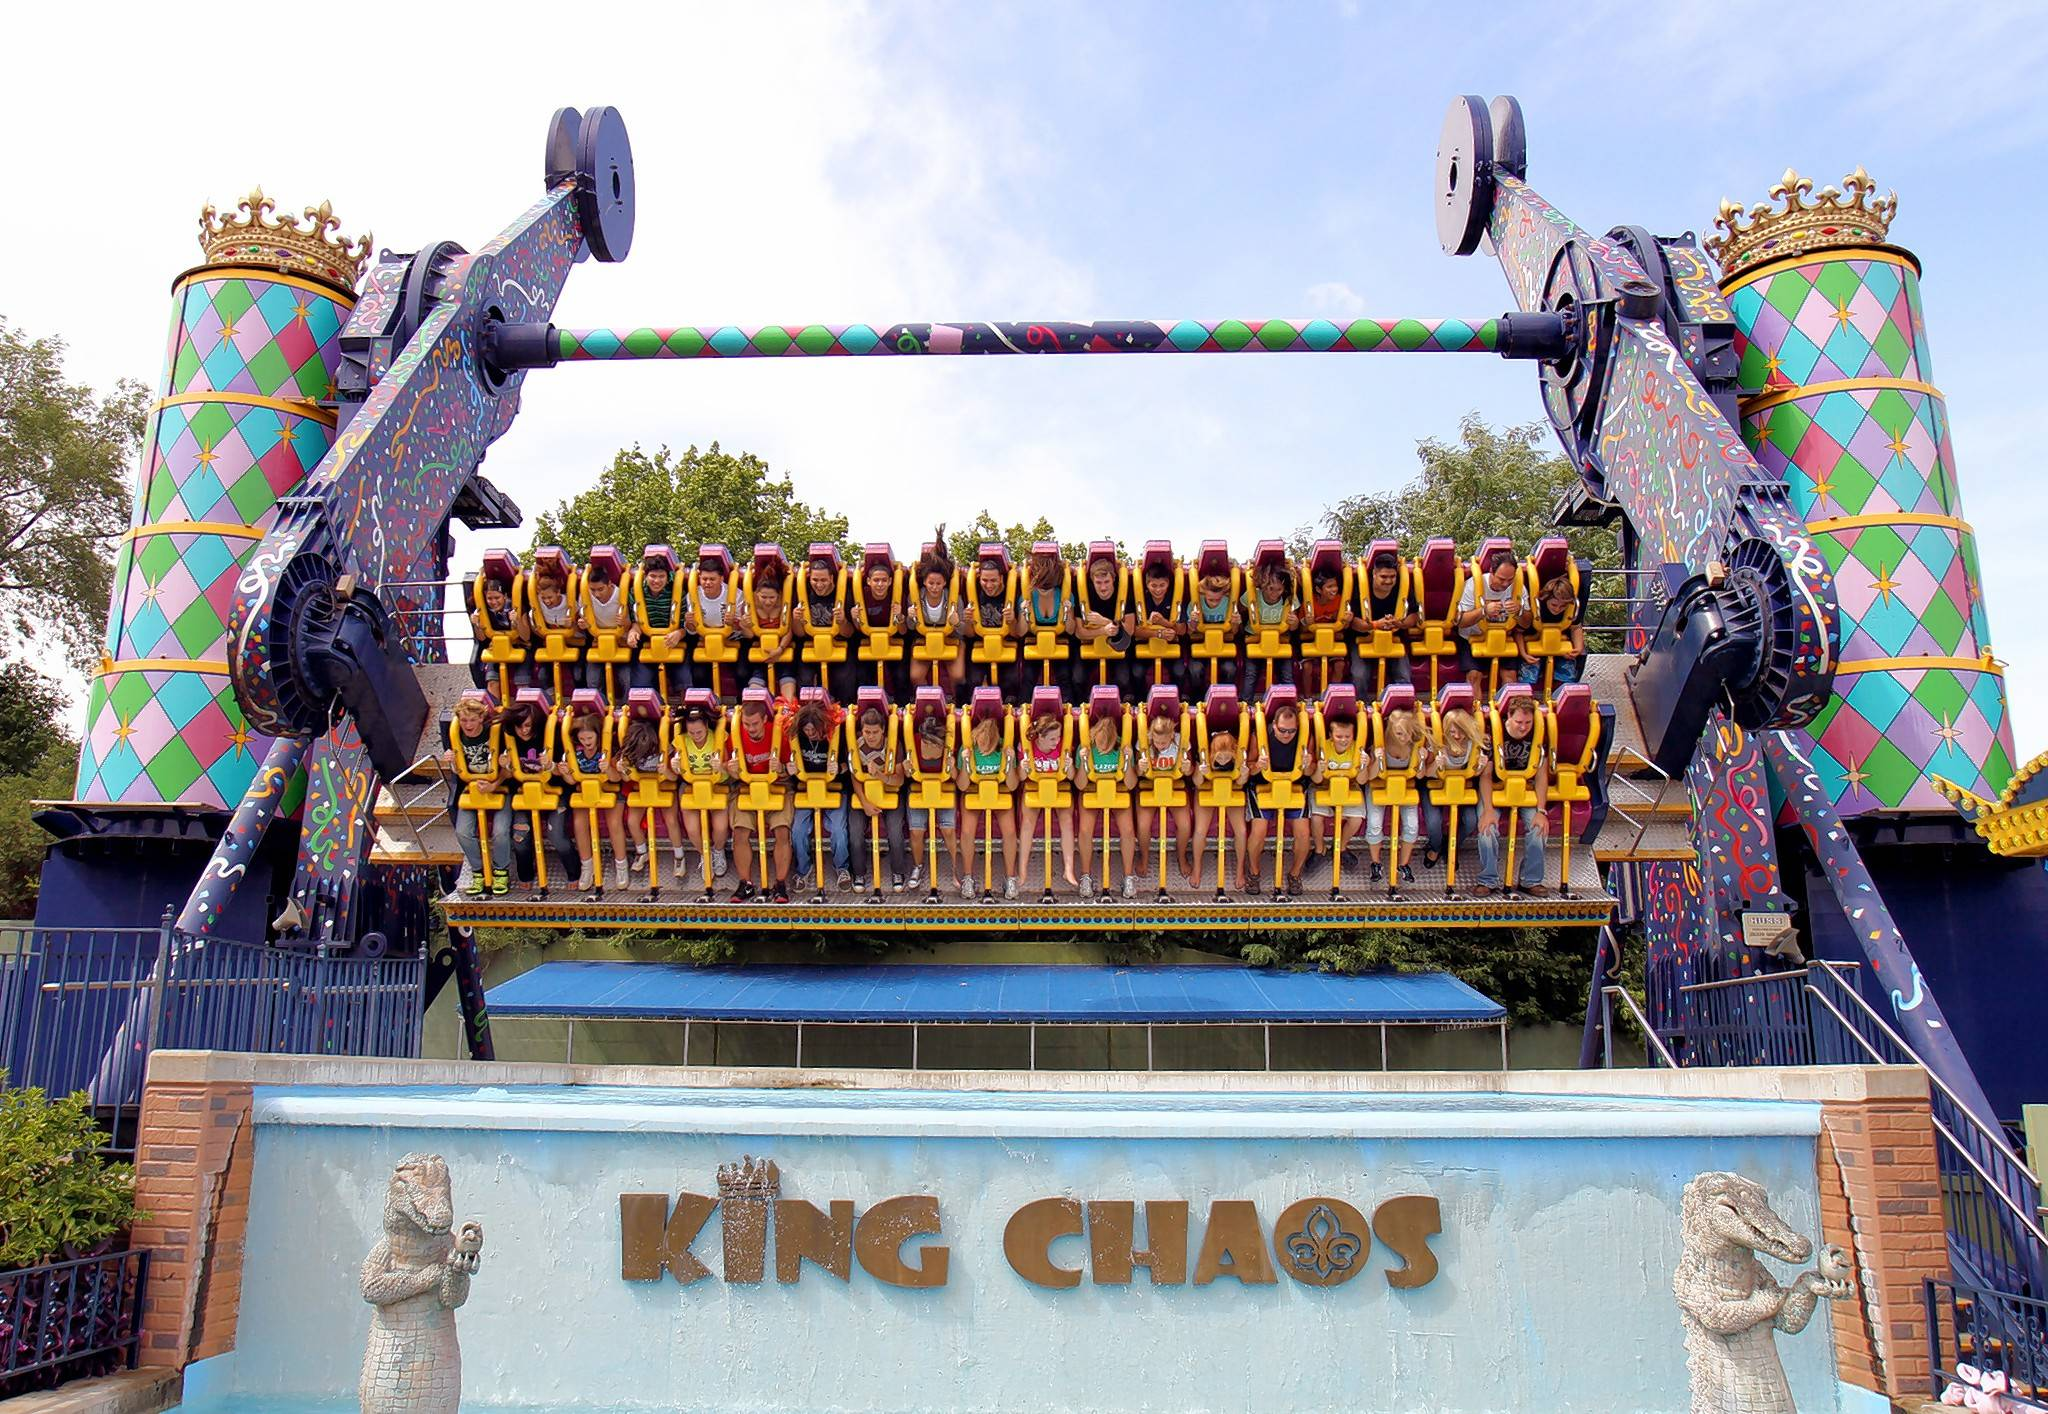 Courtesy of Six Flags Entertainment Corp. Riders roll and rotate on King Chaos.